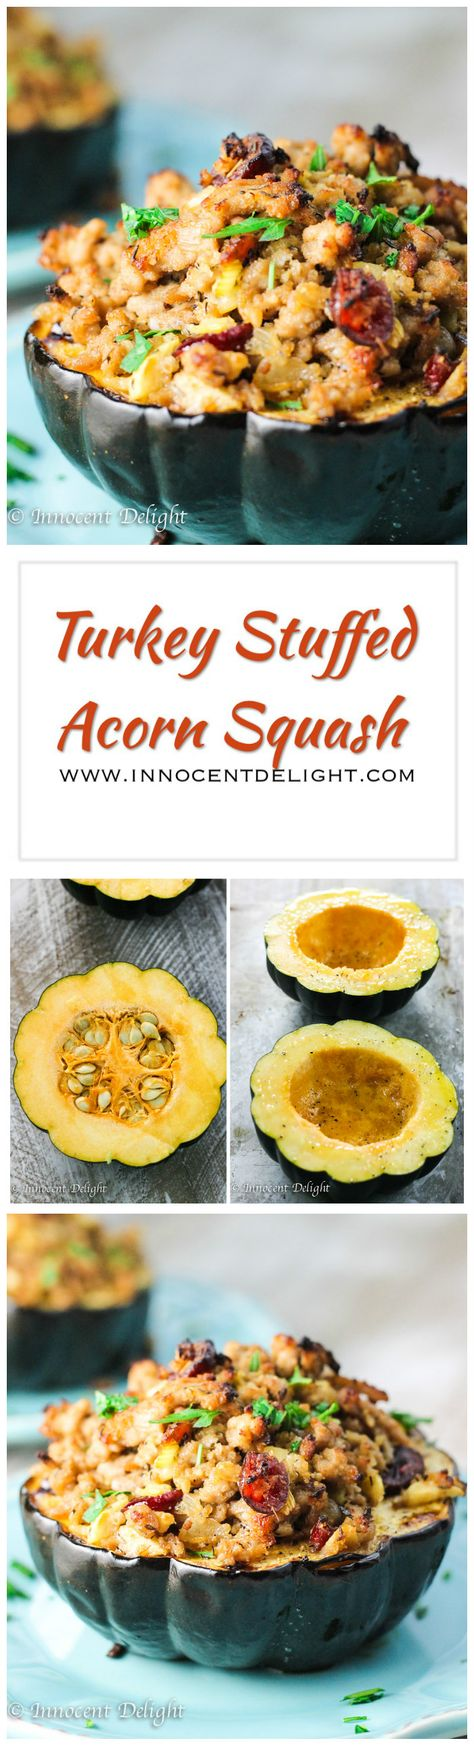 Turkey Stuffed Acorn Squash – it's a Fall on a plate; Turkey with Apples, Cranberries and dried Thyme stuffed in a sweet Acorn Squash makes for irresistible combination of fall flavors.